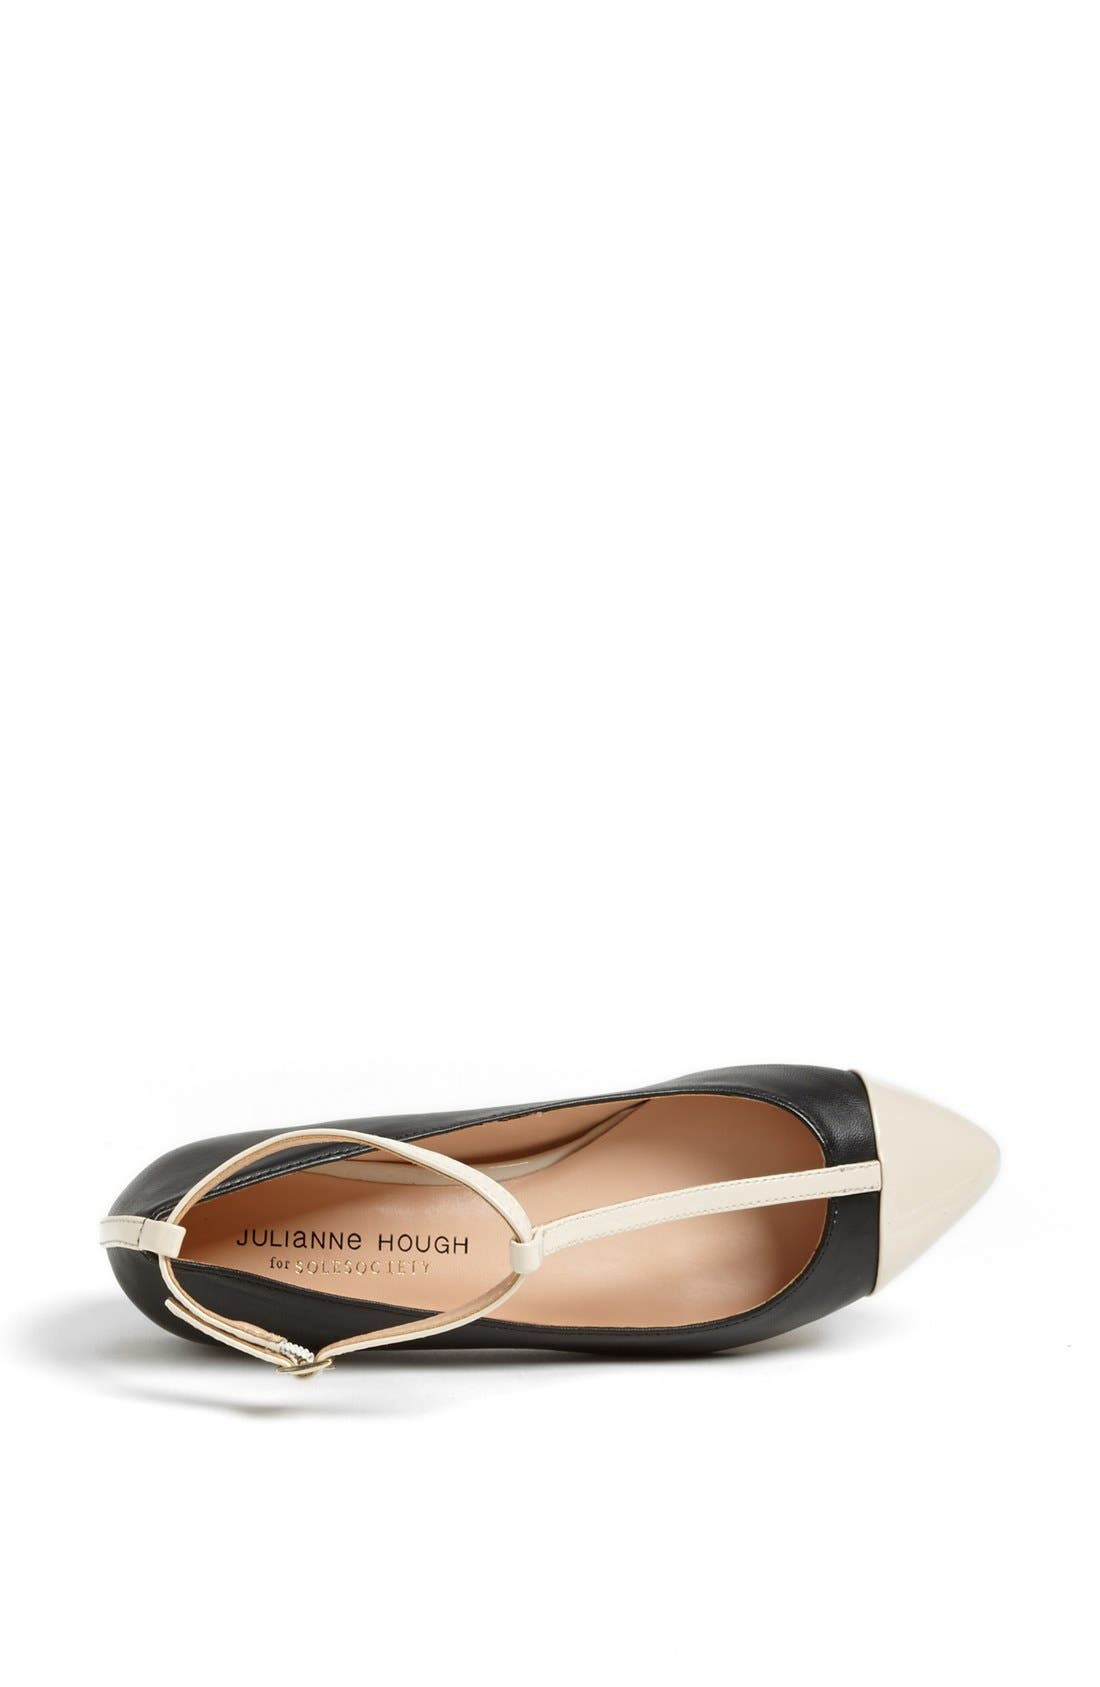 Julianne Hough for Sole Society 'Addy' Flat,                             Alternate thumbnail 2, color,                             001